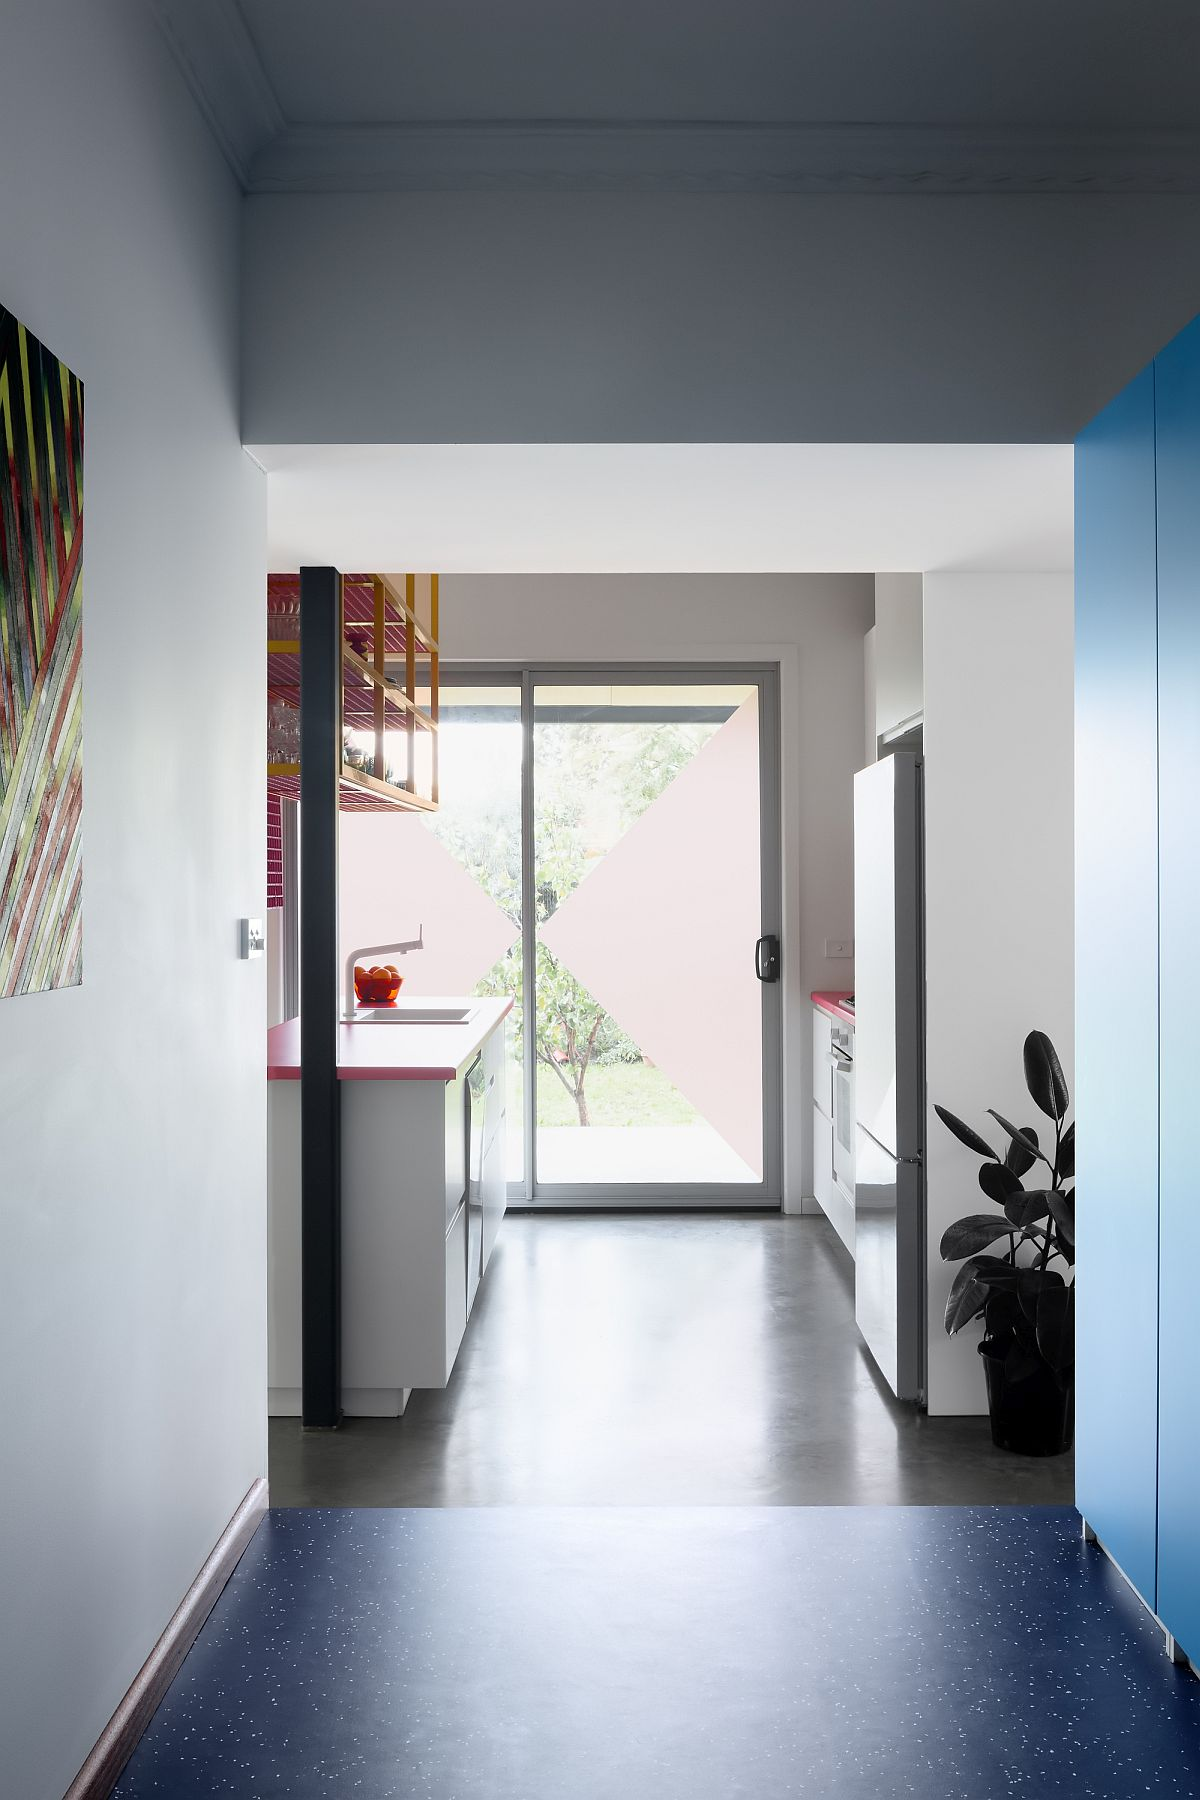 Bright-blue-floor-and-storage-units-give-the-interior-a-more-cheerful-appeal-60319